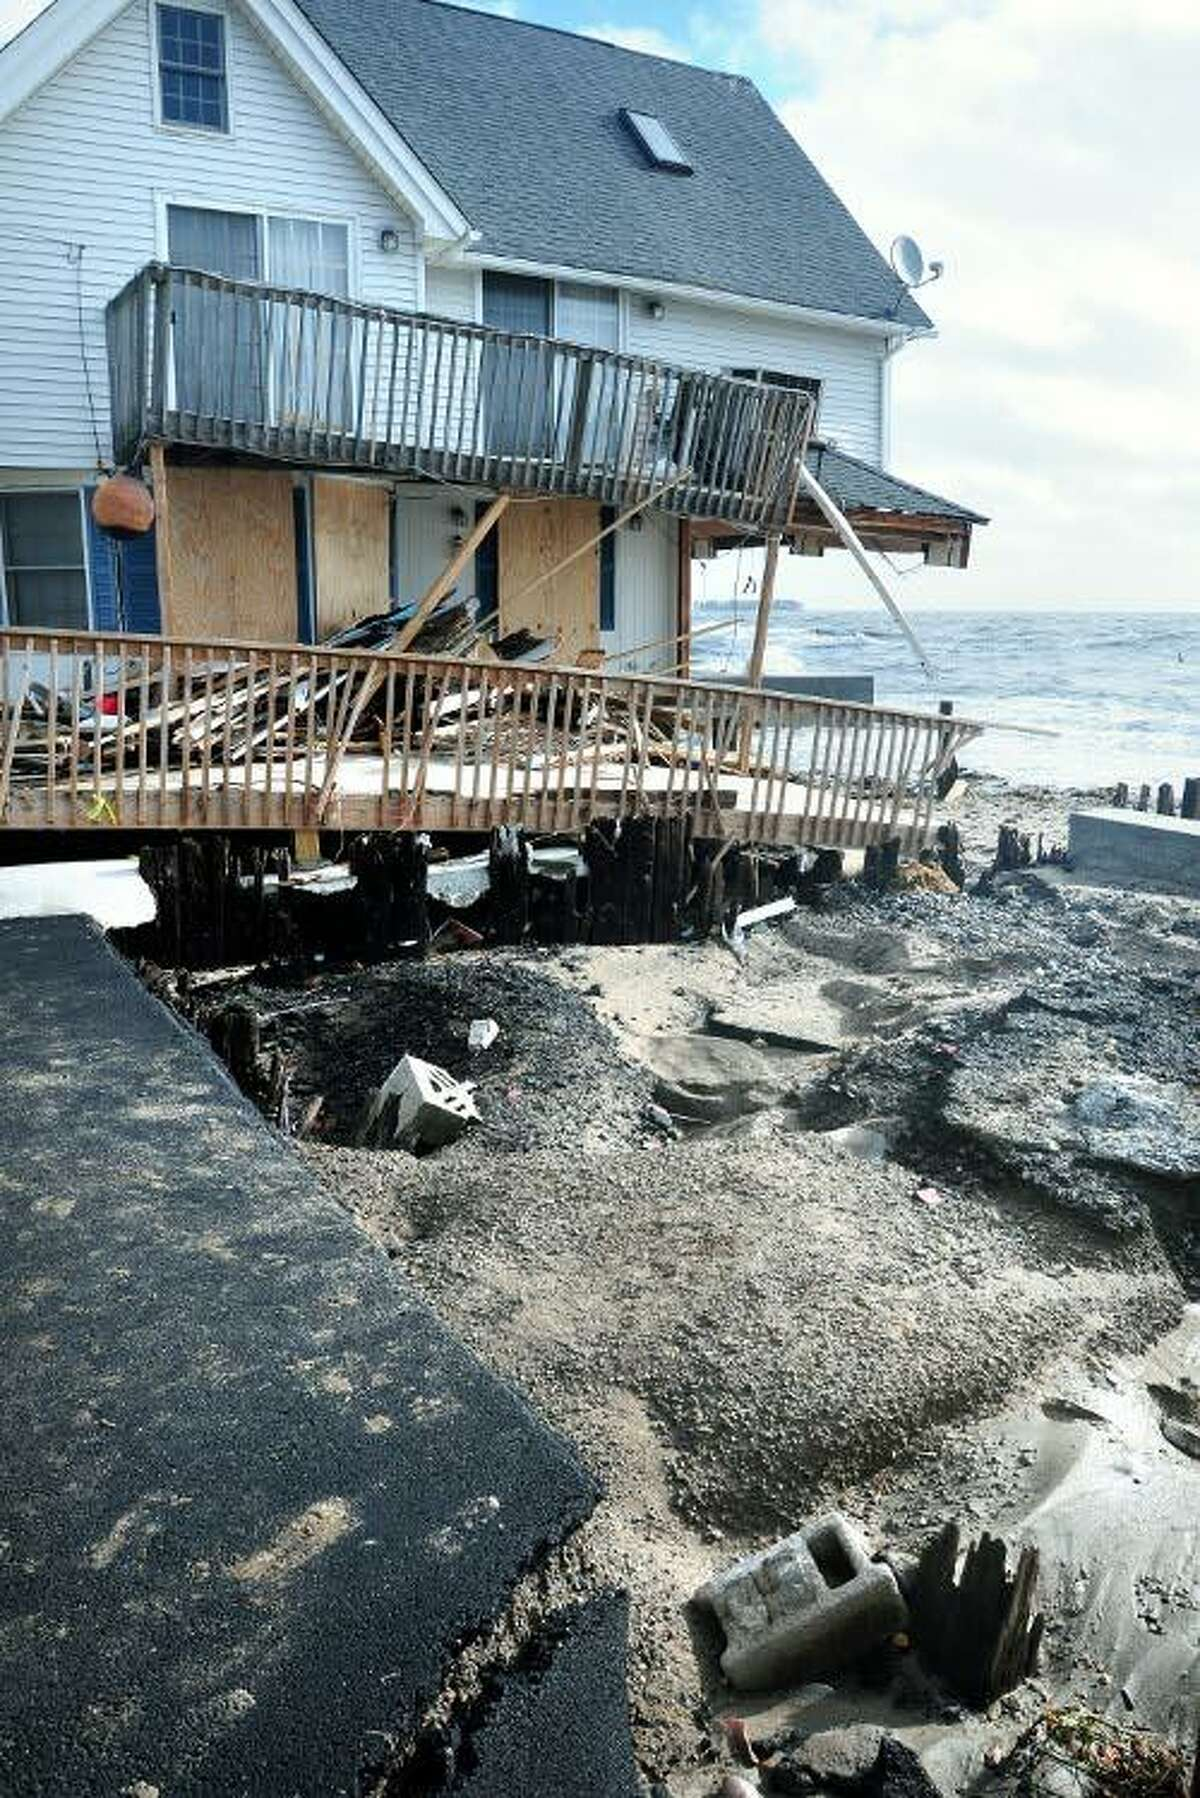 A home on Bittersweet Ave. facing the Long Island Sound in Milford photographed on 10/30/2012 was severely damaged by high tide the previous night. Photo by Arnold Gold/New Haven Register